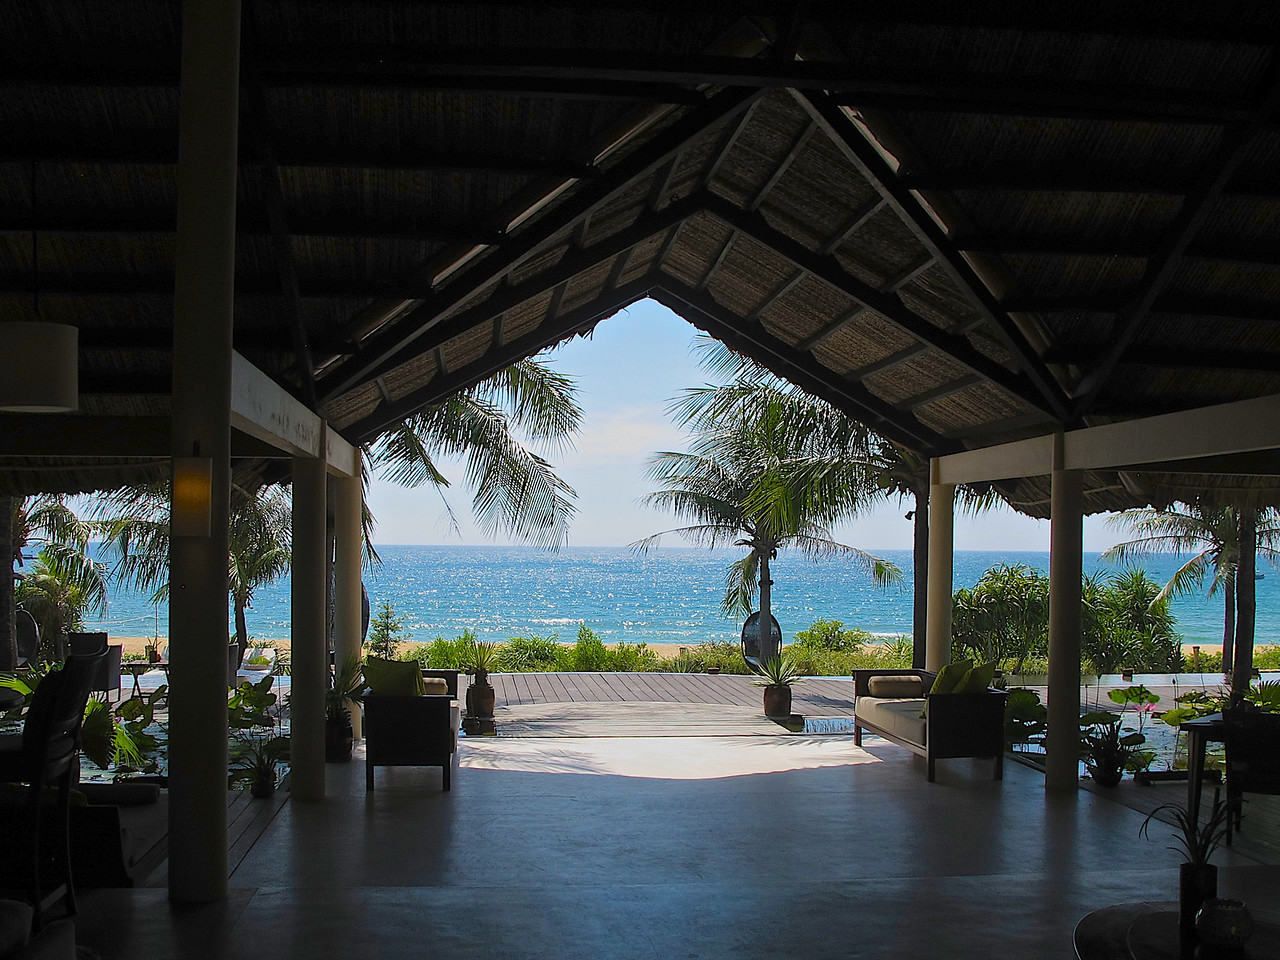 From the main building, you have a great 180 degree view of the beach and the bay, leading to the South China Sea.